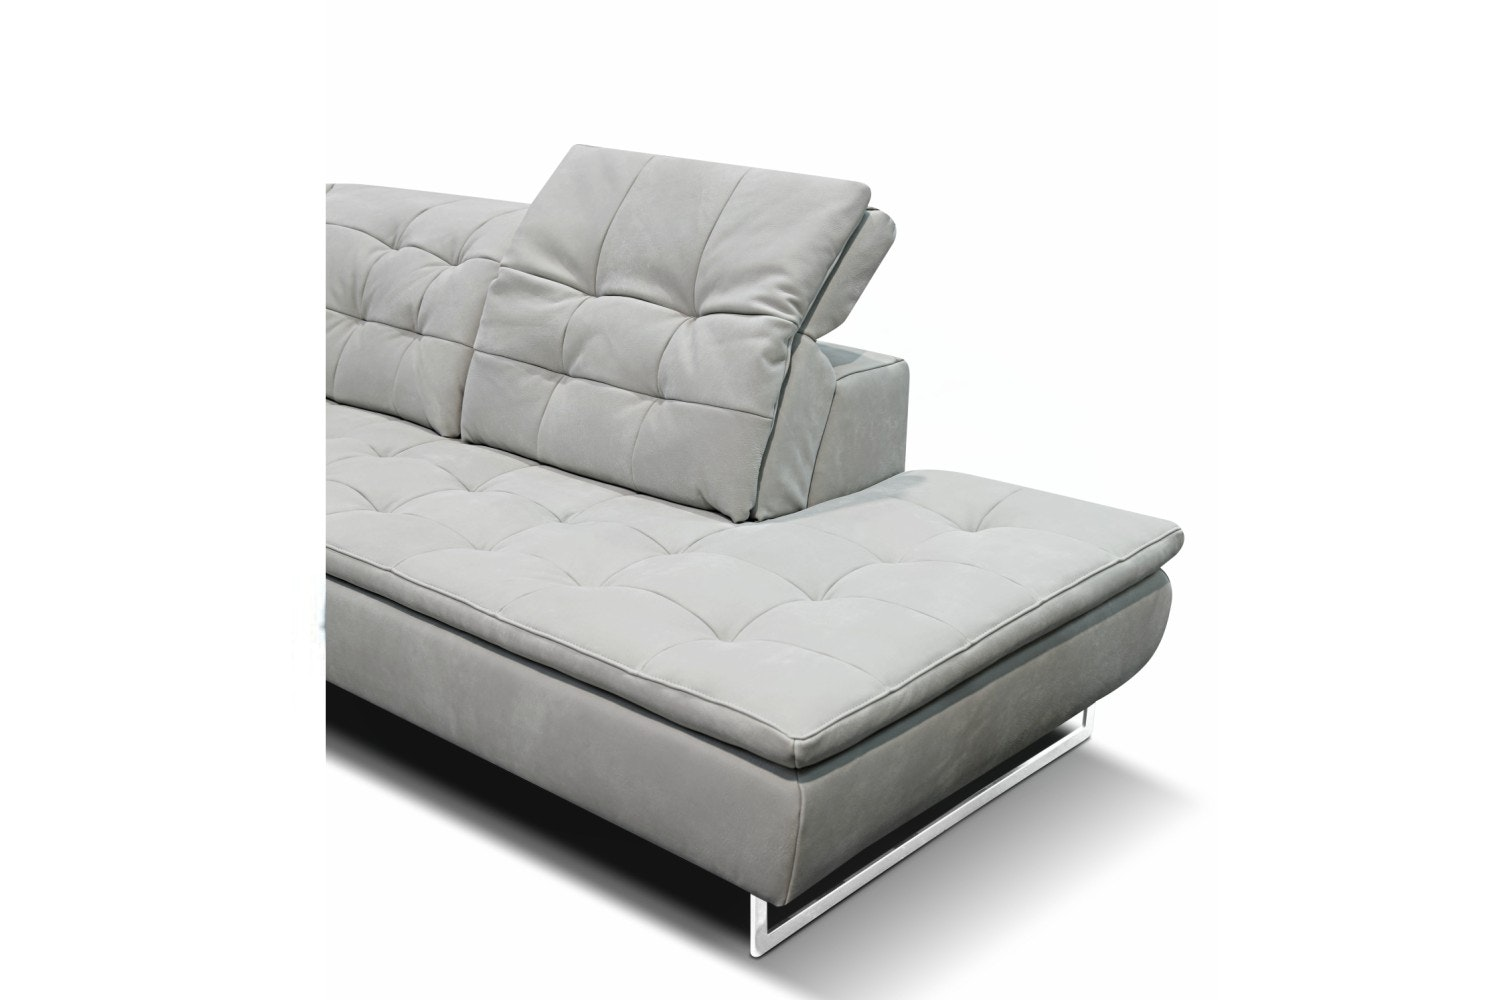 Cloud 3 Seater Left Arm Facing Chaise